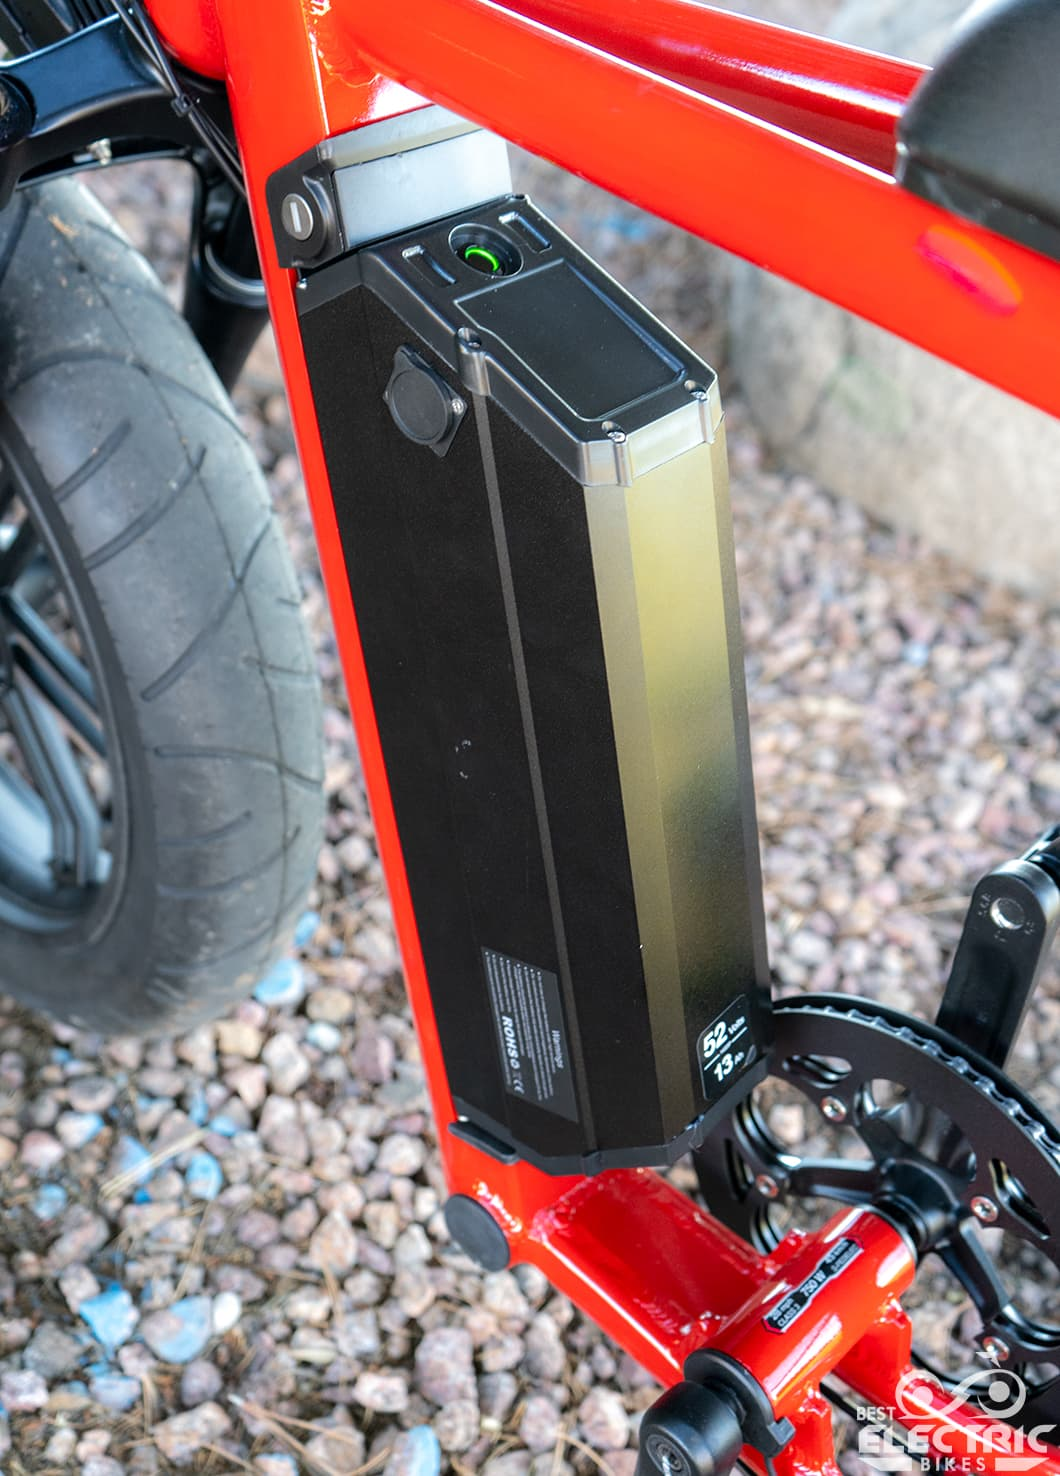 Juiced Bikes City Scrambler 2019 battery